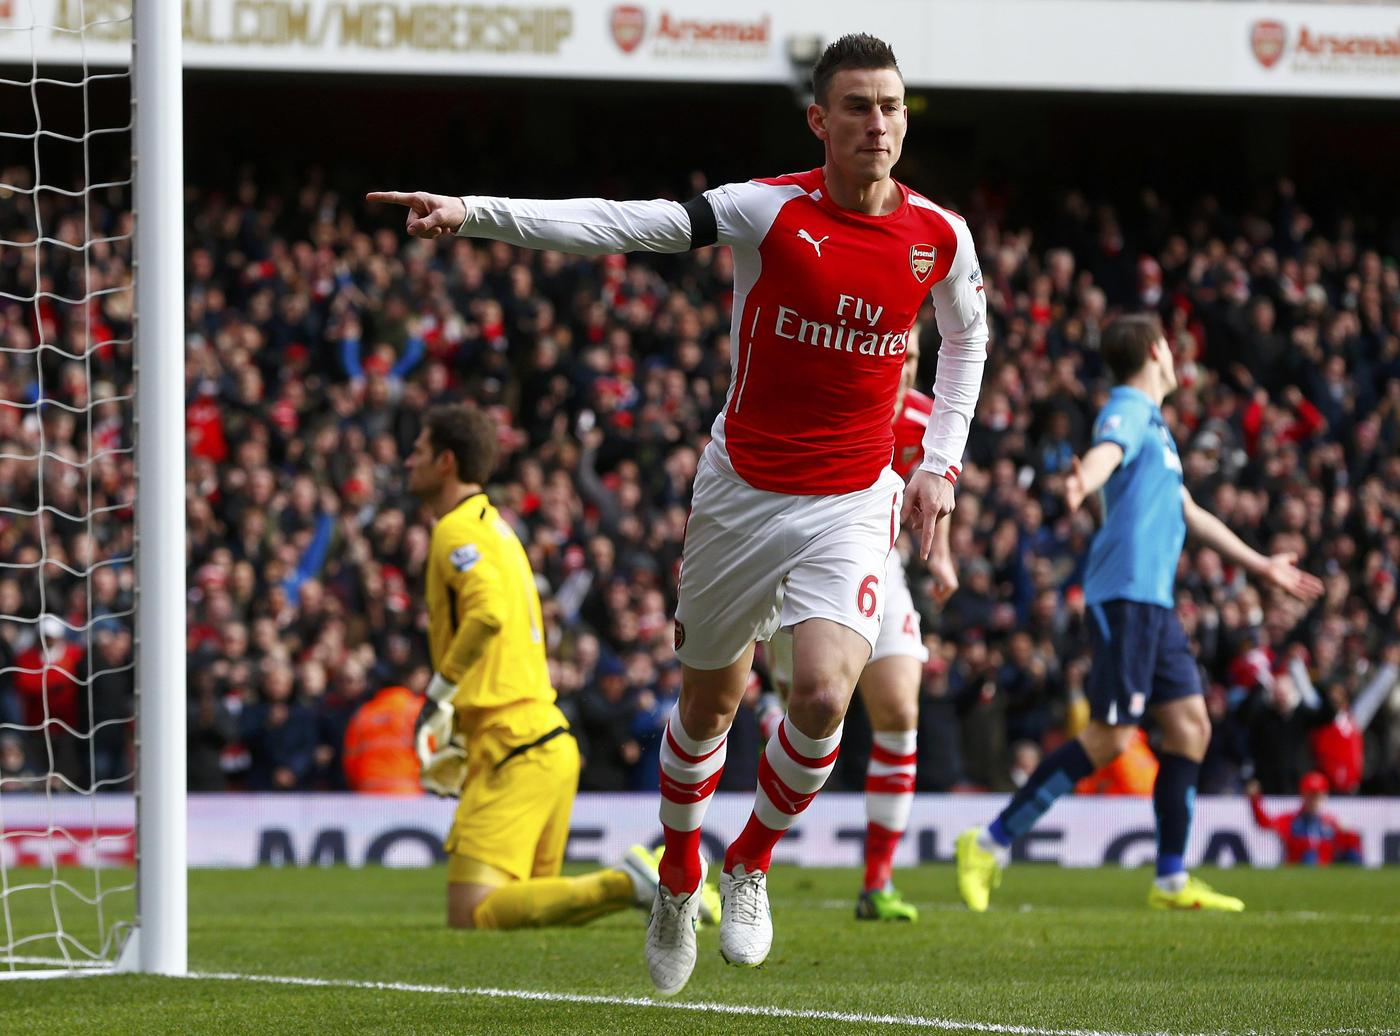 Arsenal's Laurent Koscielny celebrates after scoring a goal during their English Premier League soccer match against Stoke City at the Emirates Stadium in London January 11, 2015. REUTERS/Eddie Keogh (BRITAIN - Tags: SPORT SOCCER TPX IMAGES OF THE DAY) EDITORIAL USE ONLY. NO USE WITH UNAUTHORIZED AUDIO, VIDEO, DATA, FIXTURE LISTS, CLUB/LEAGUE LOGOS OR 'LIVE' SERVICES. ONLINE IN-MATCH USE LIMITED TO 45 IMAGES, NO VIDEO EMULATION. NO USE IN BETTING, GAMES OR SINGLE CLUB/LEAGUE/PLAYER PUBLICATIONS.FOR EDITORIAL USE ONLY. NOT FOR SALE FOR MARKETING OR ADVERTISING CAMPAIGNS. Eddie Keogh/Reuters